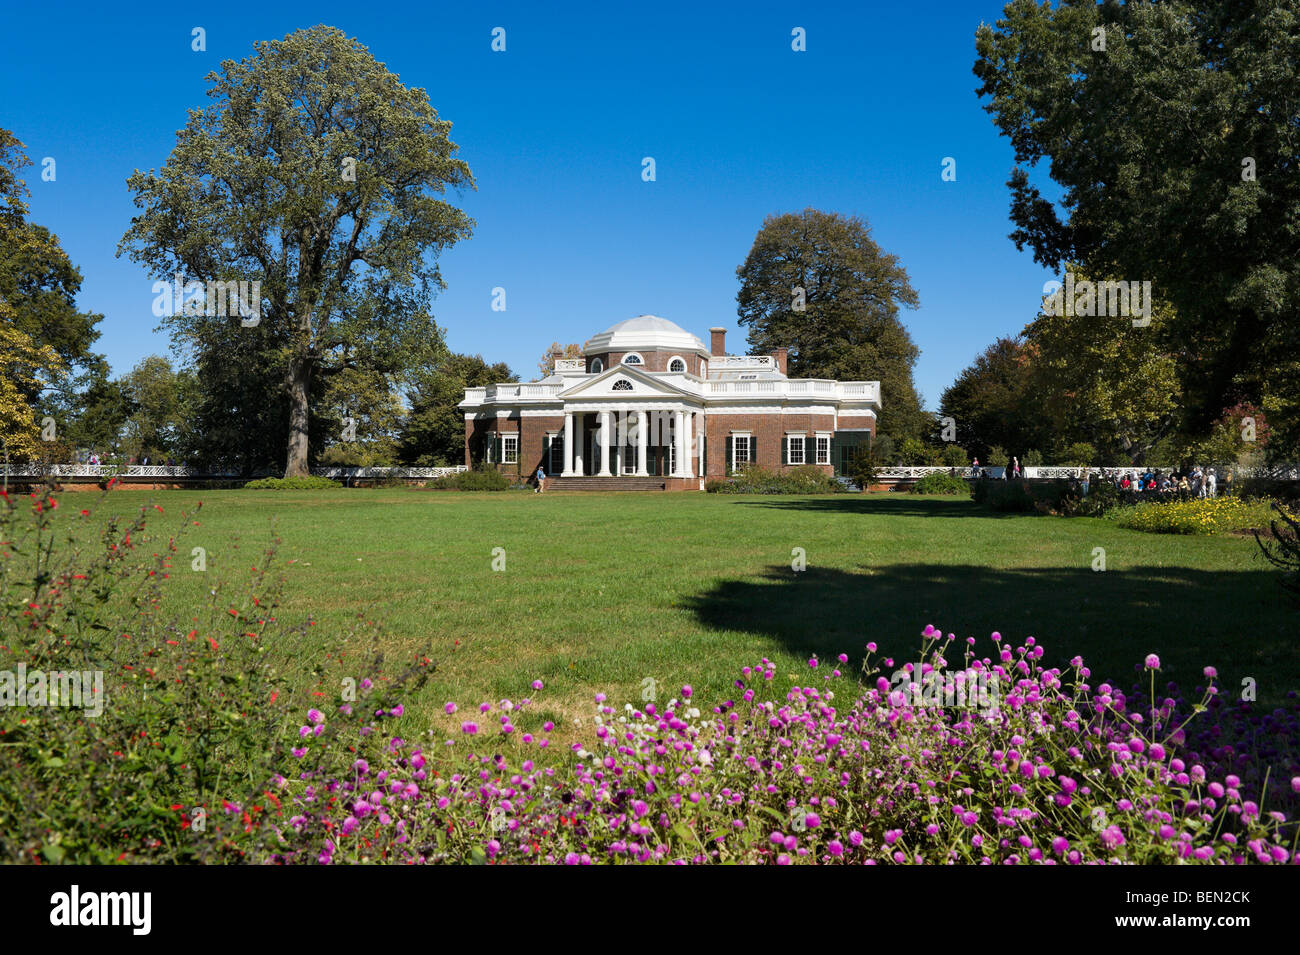 La maison de Thomas Jefferson, Monticello, Charlottesville, Virginia, USA Photo Stock